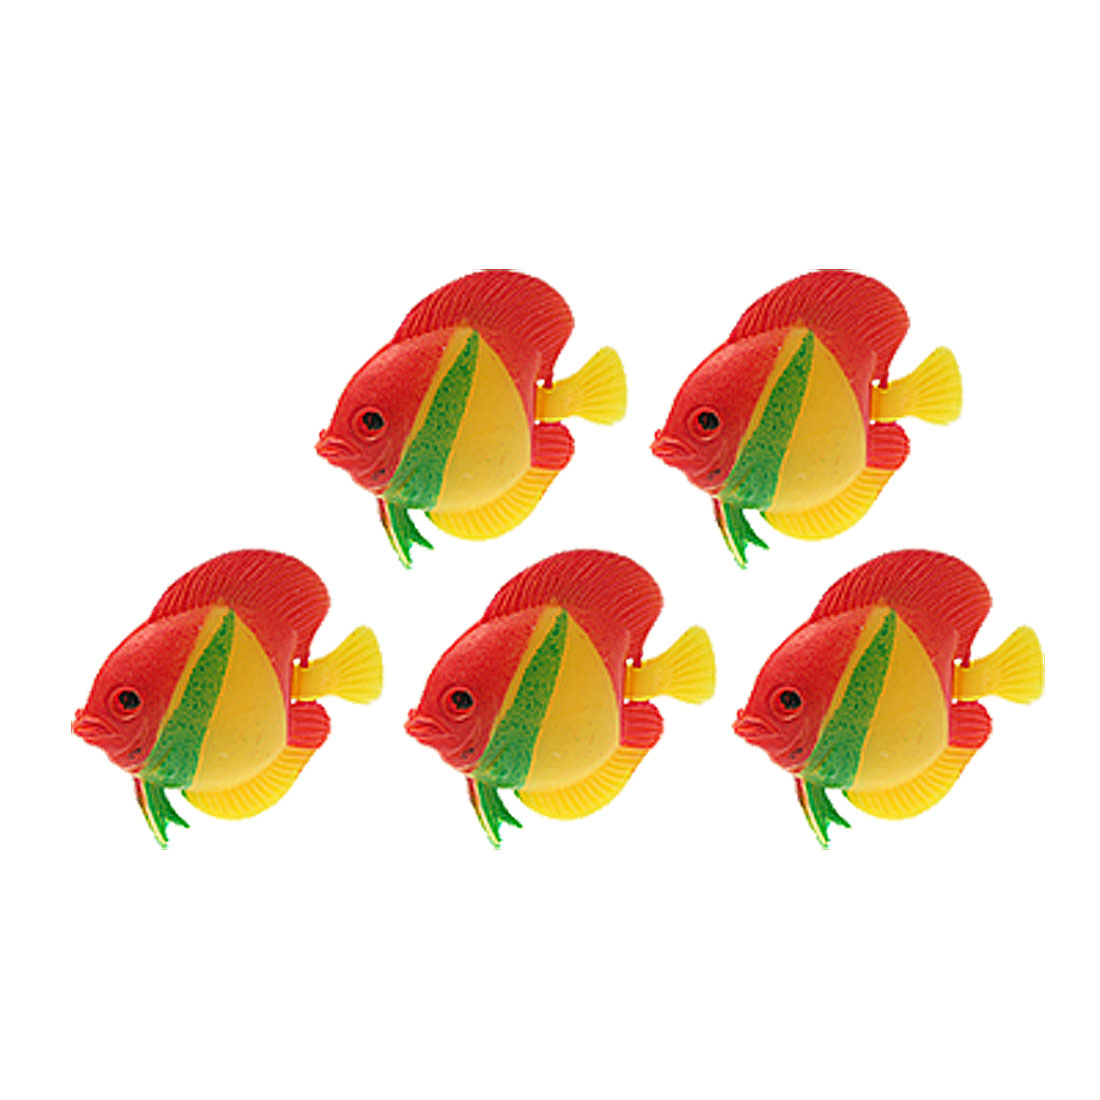 Real-Like Floating Plastic Fish Water Aquarium Ornament